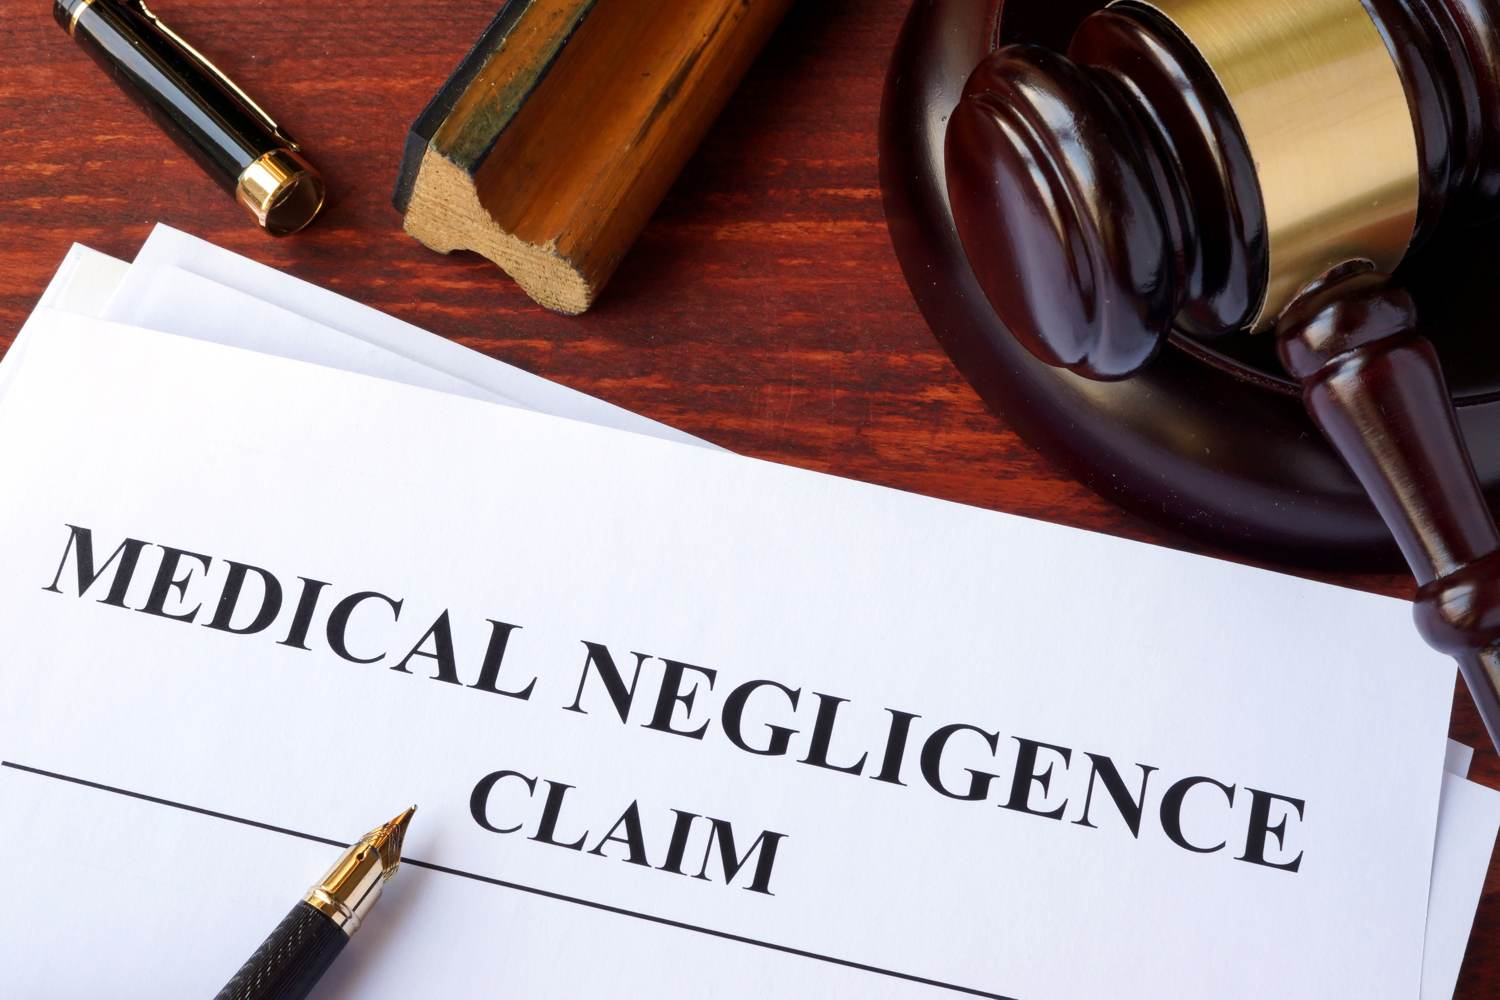 Shu Medical Negligence Claims 547629976 Designer491 Foys Solicitorsfoys Solicitors